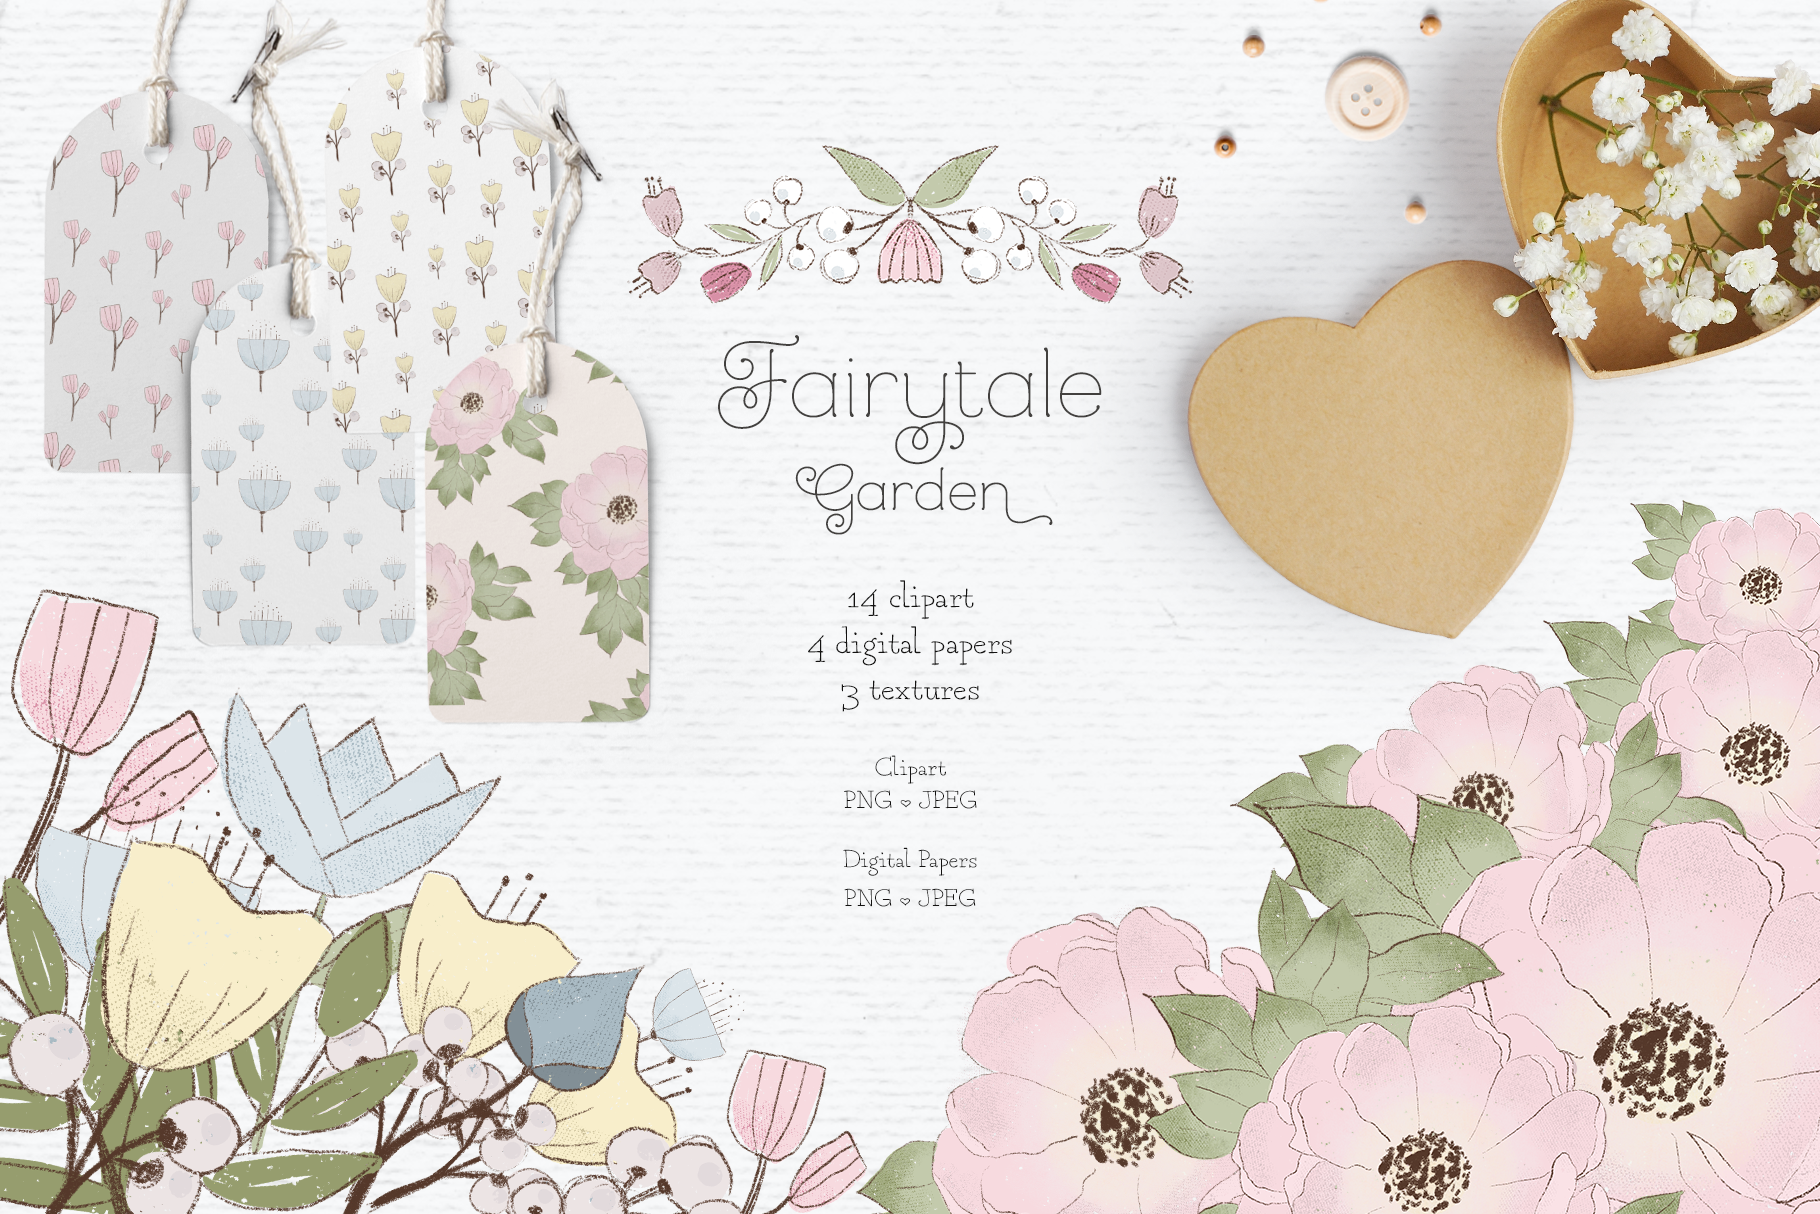 Whimsical floral clipart pack included with the class